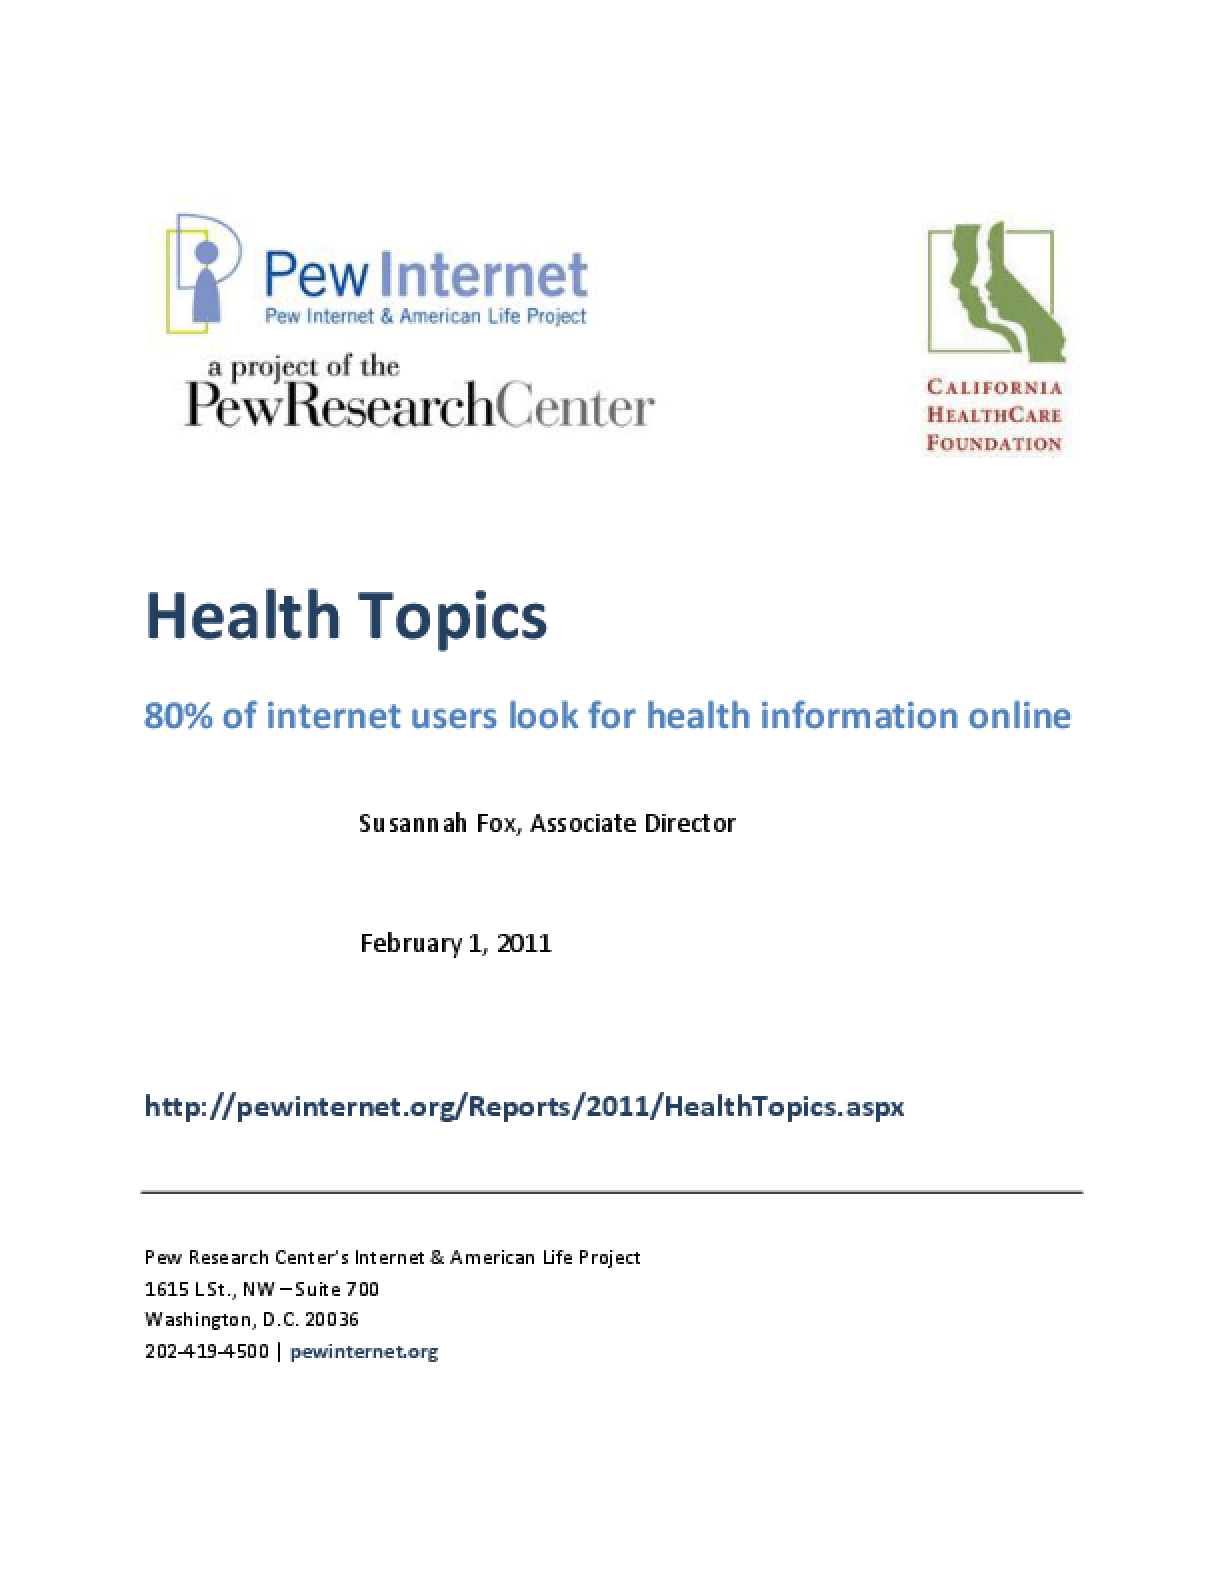 Health Topics: 80% of Internet Users Look for Health Information Online